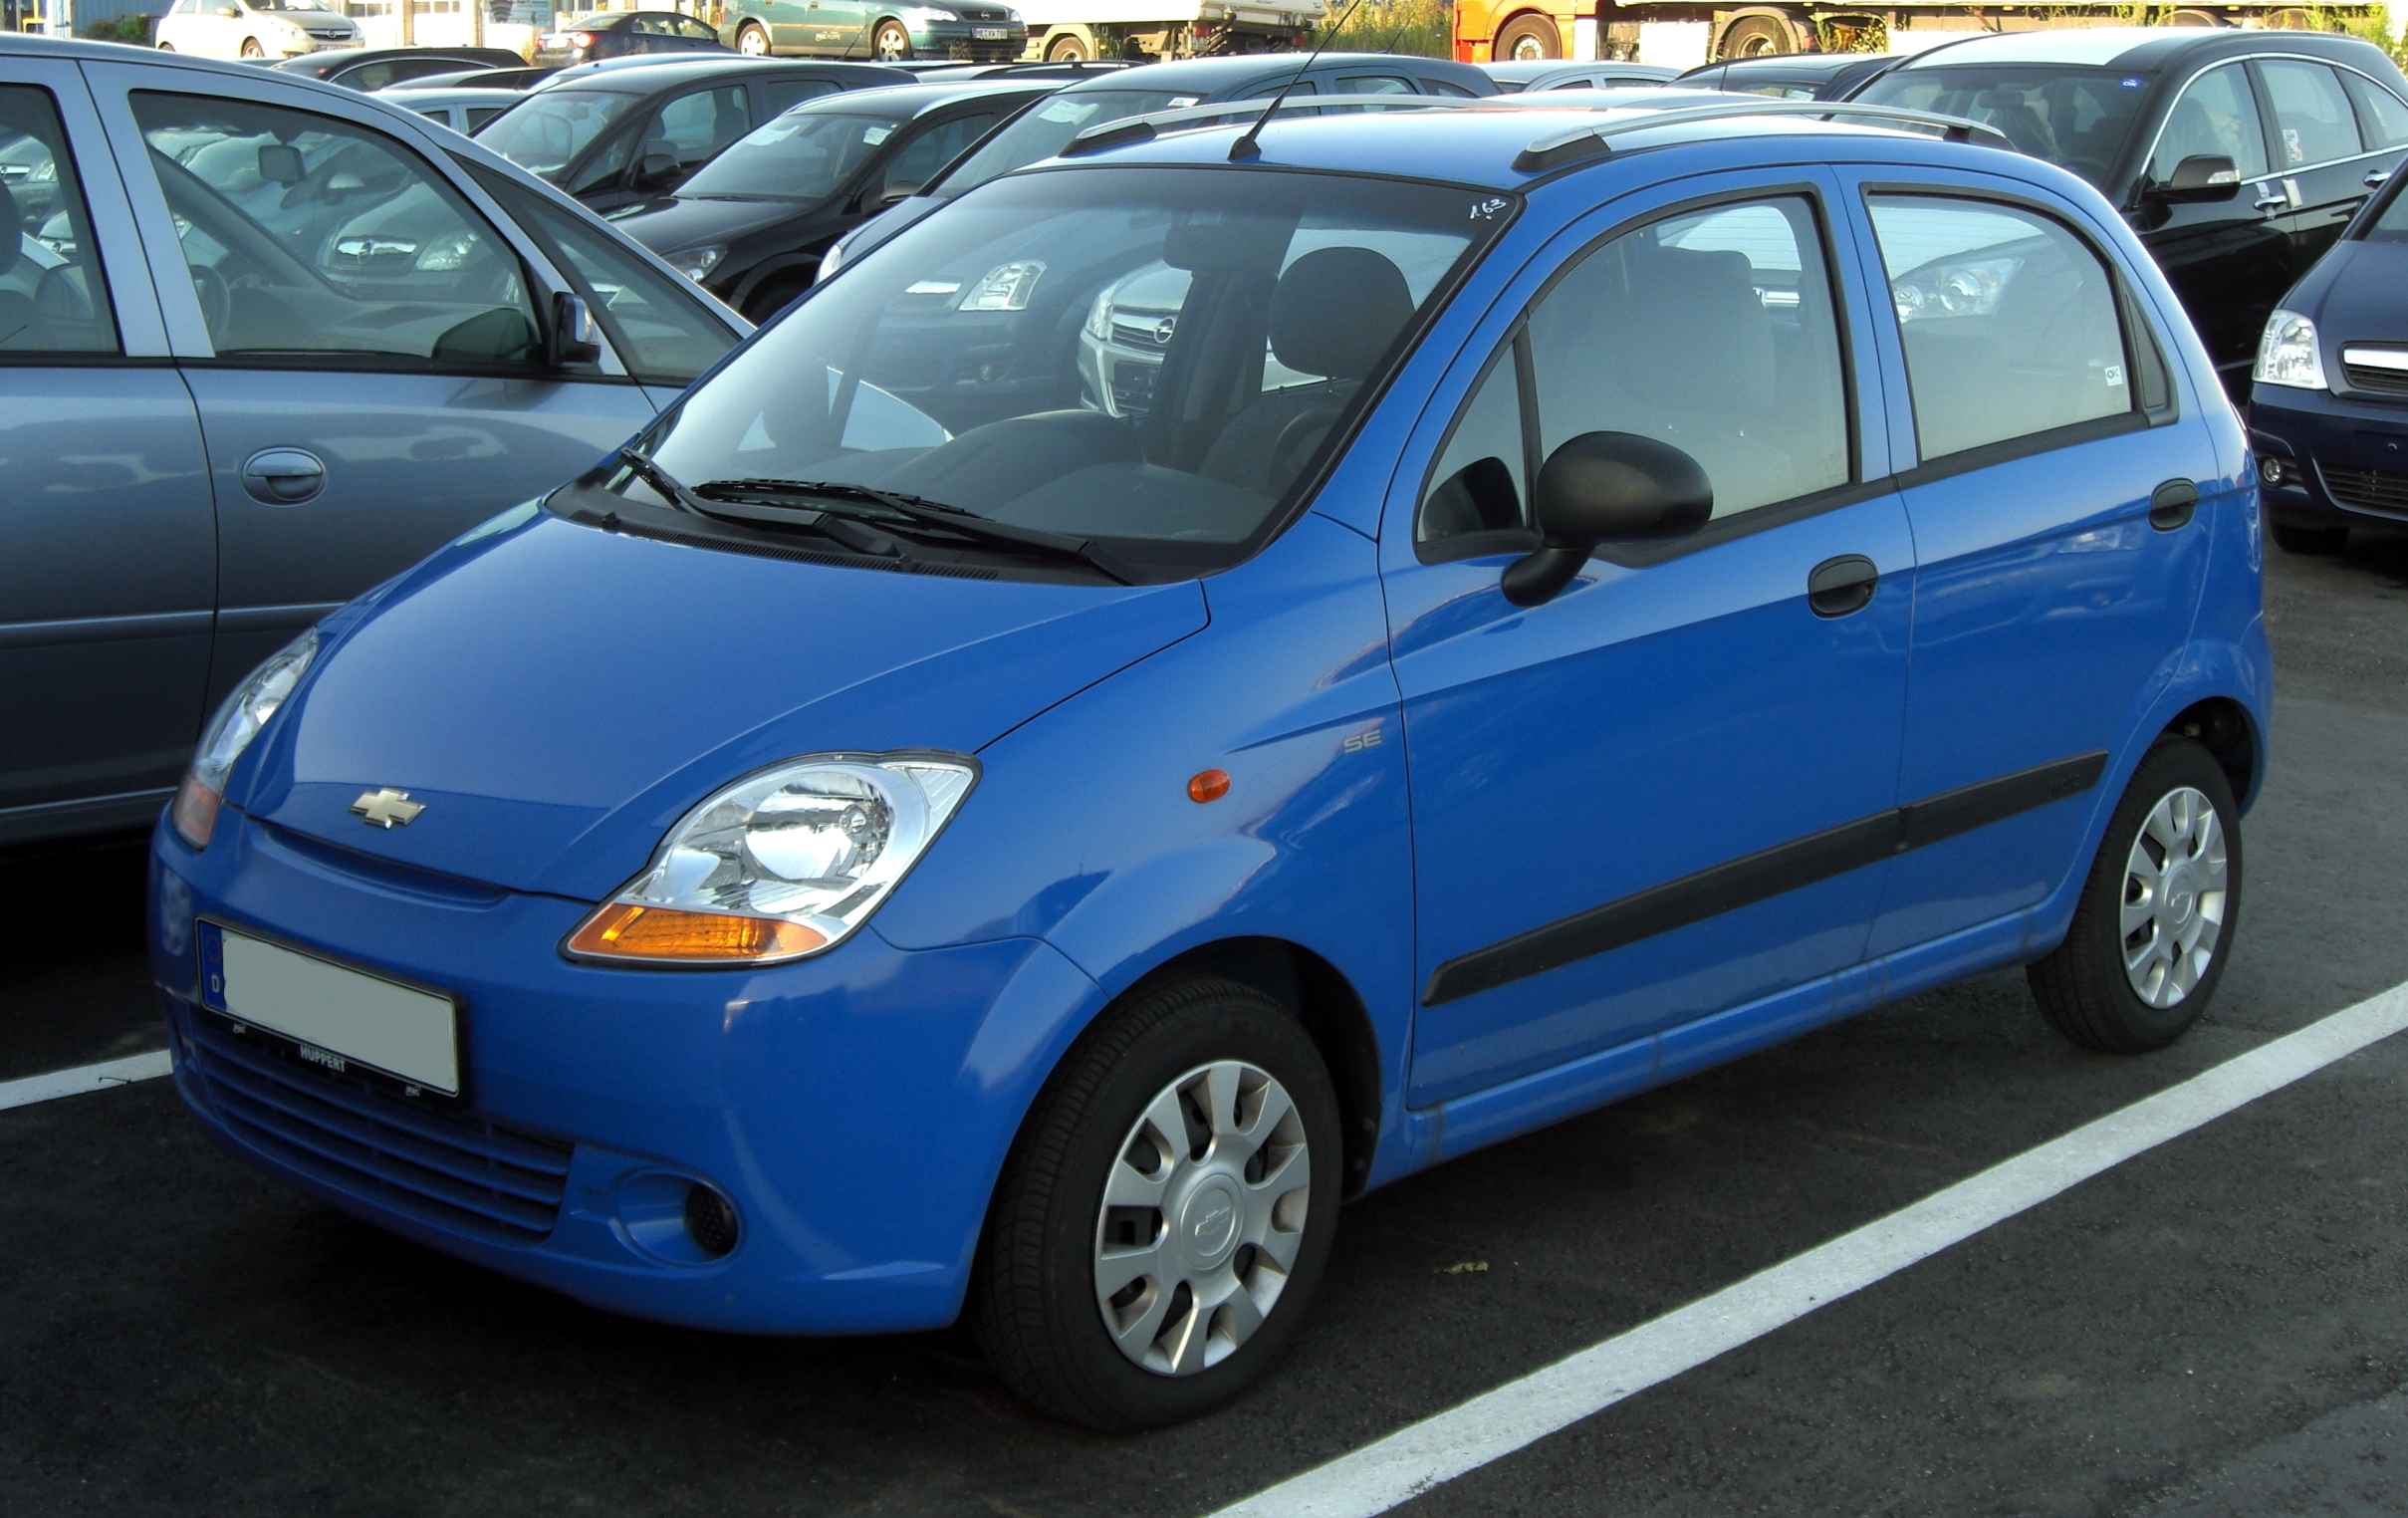 Chevrolet Matiz 2005 photo - 3